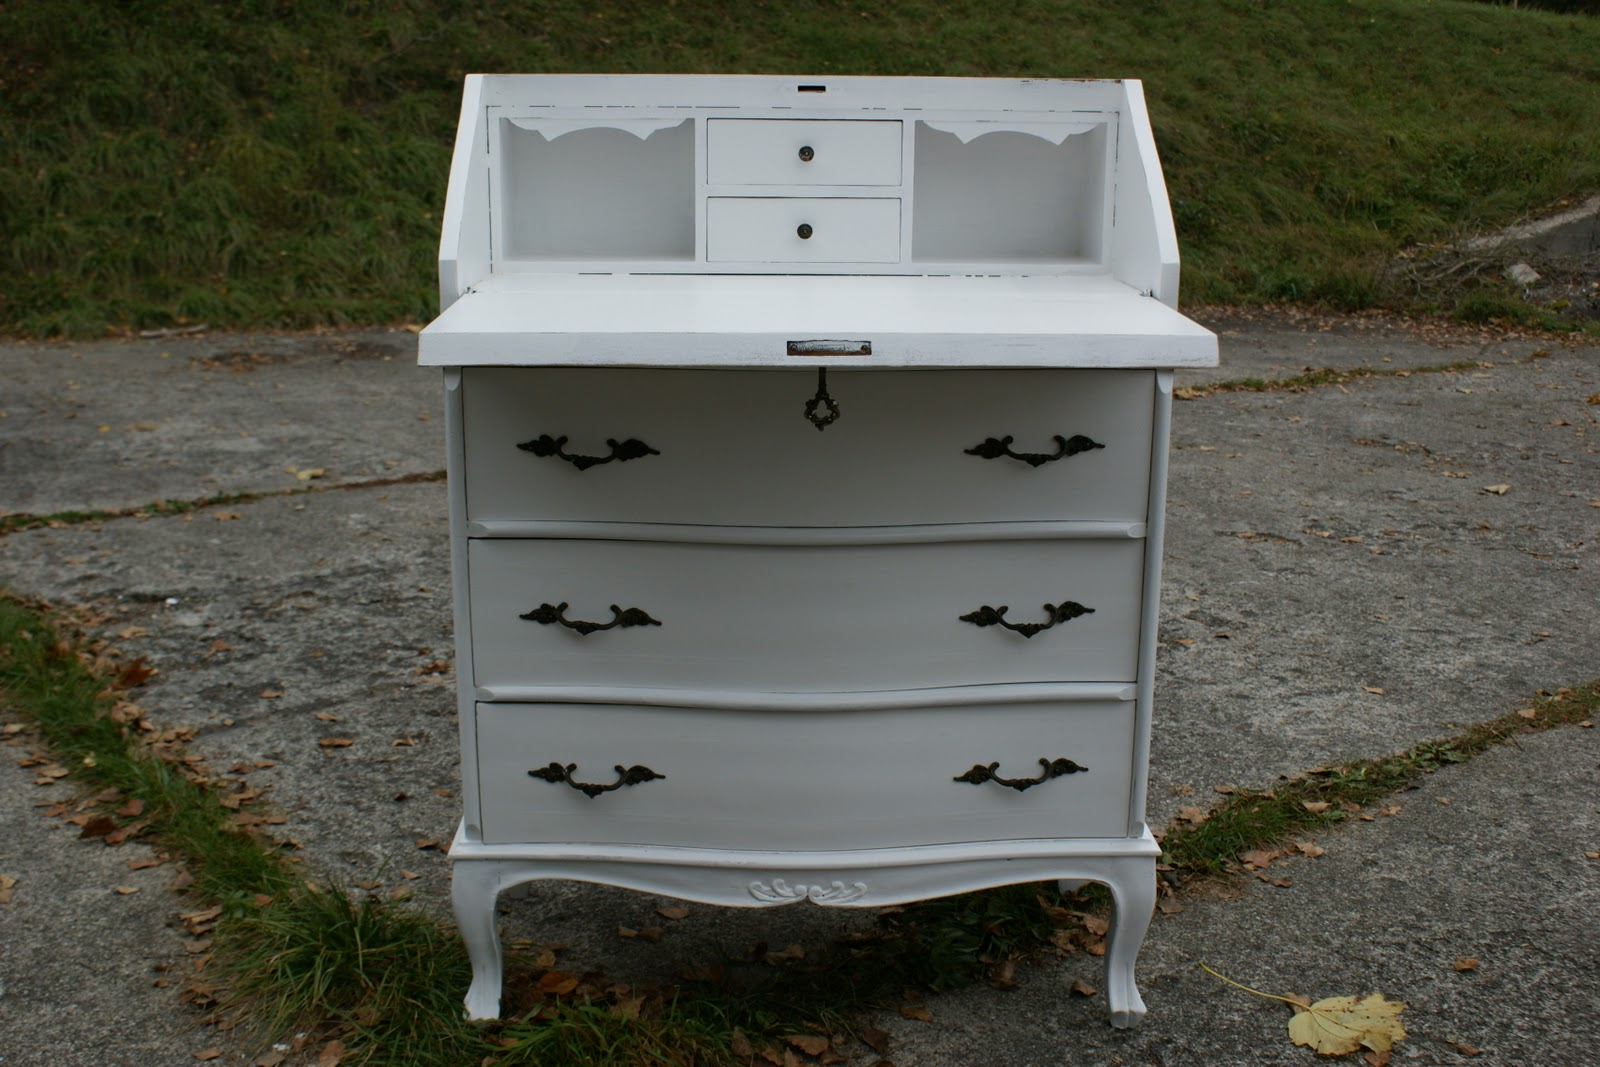 willy 39 s shabby chic schaffhausen und ein neuer sekret r wurde fertig. Black Bedroom Furniture Sets. Home Design Ideas